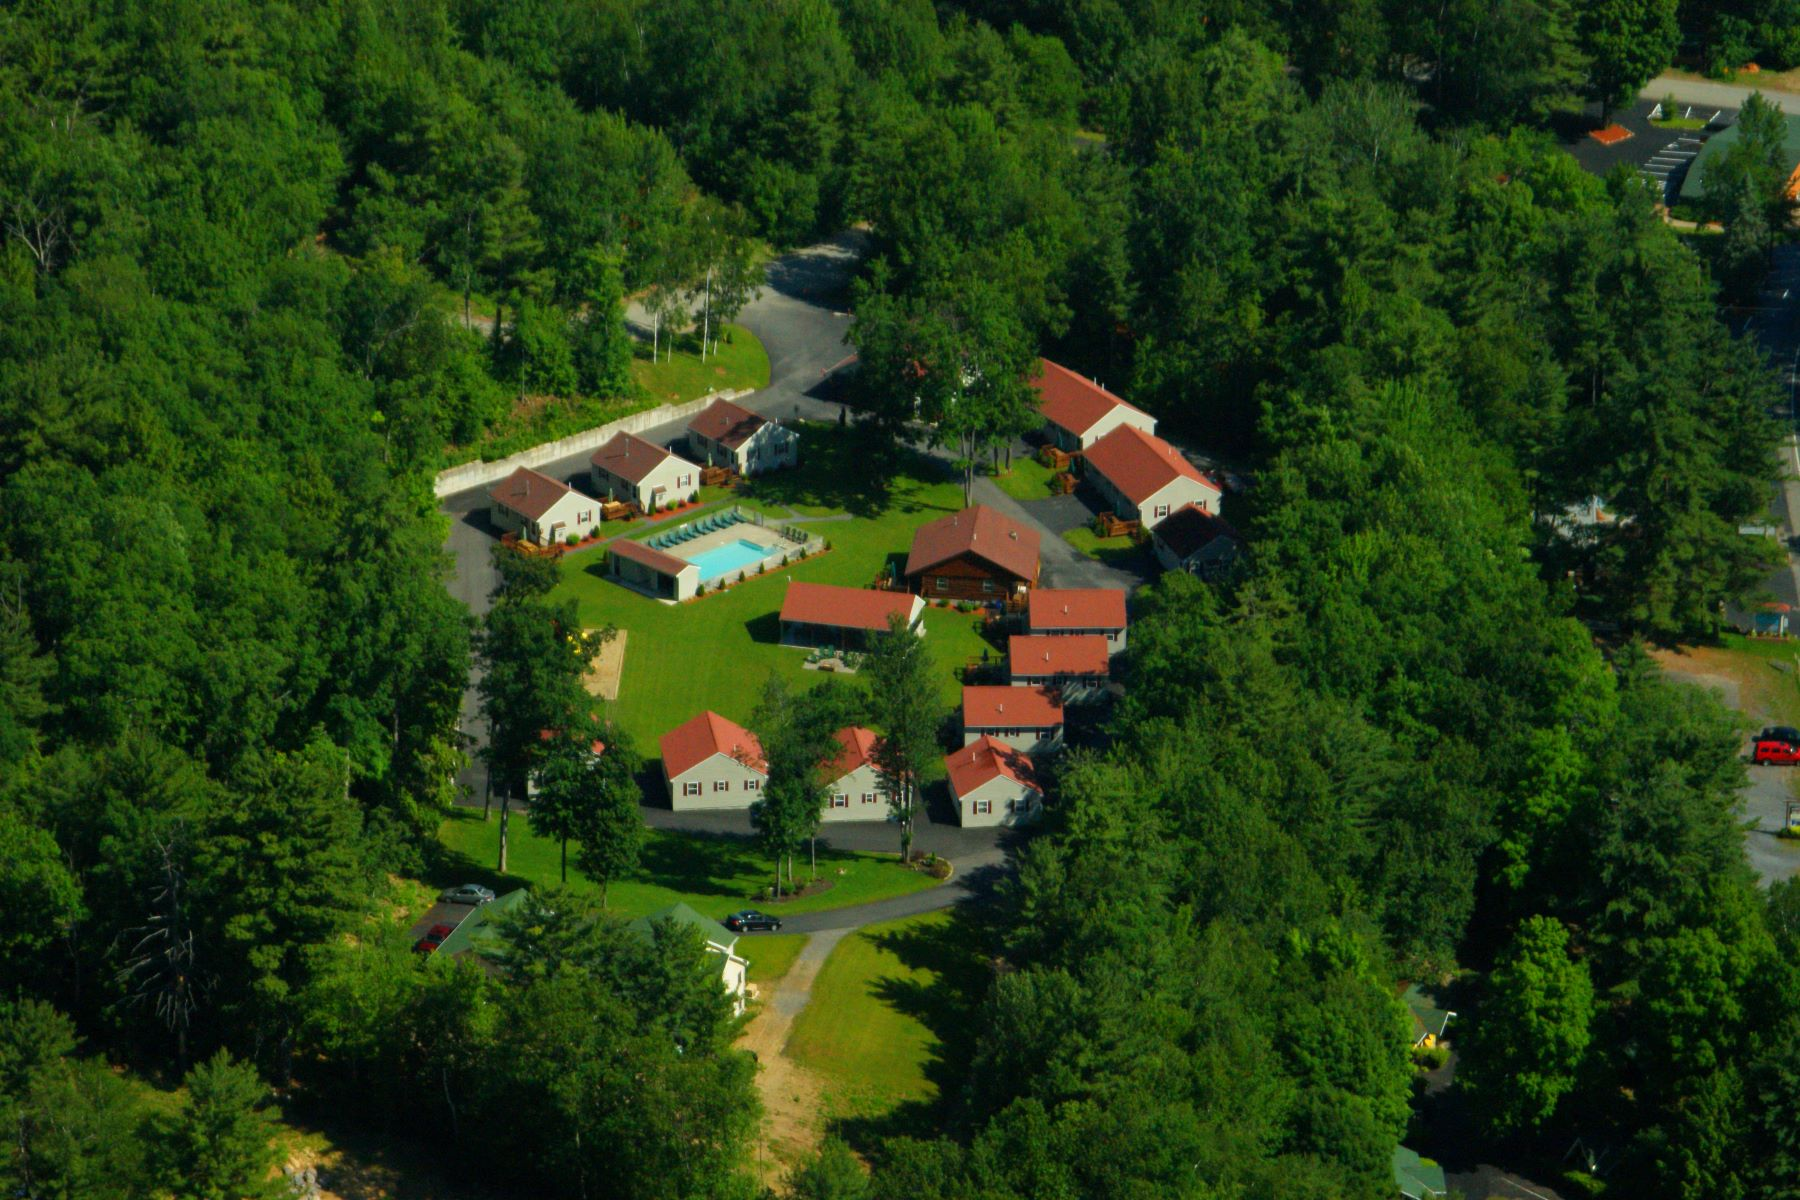 Multi-Family Homes for Sale at Outstanding Investment Opportunity 31 Vito Rd Lake George, New York 12845 United States